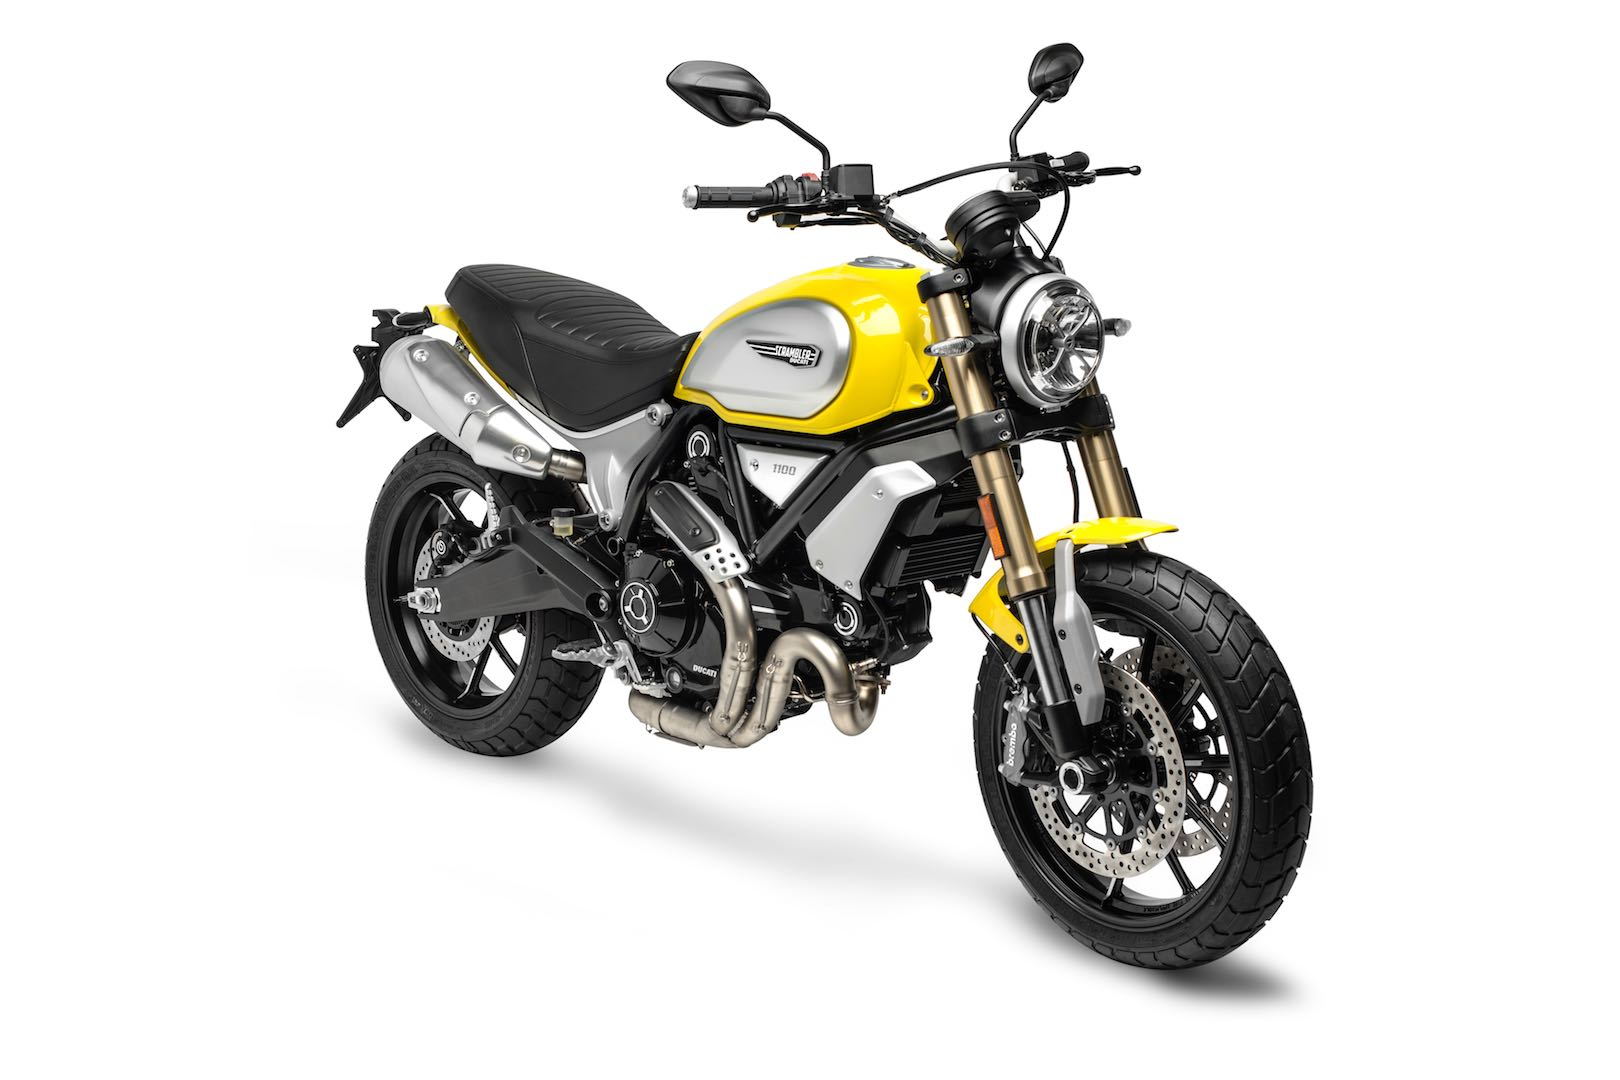 2019 Retro Motorcycles The Golden Age Of Retros Is Upon Us